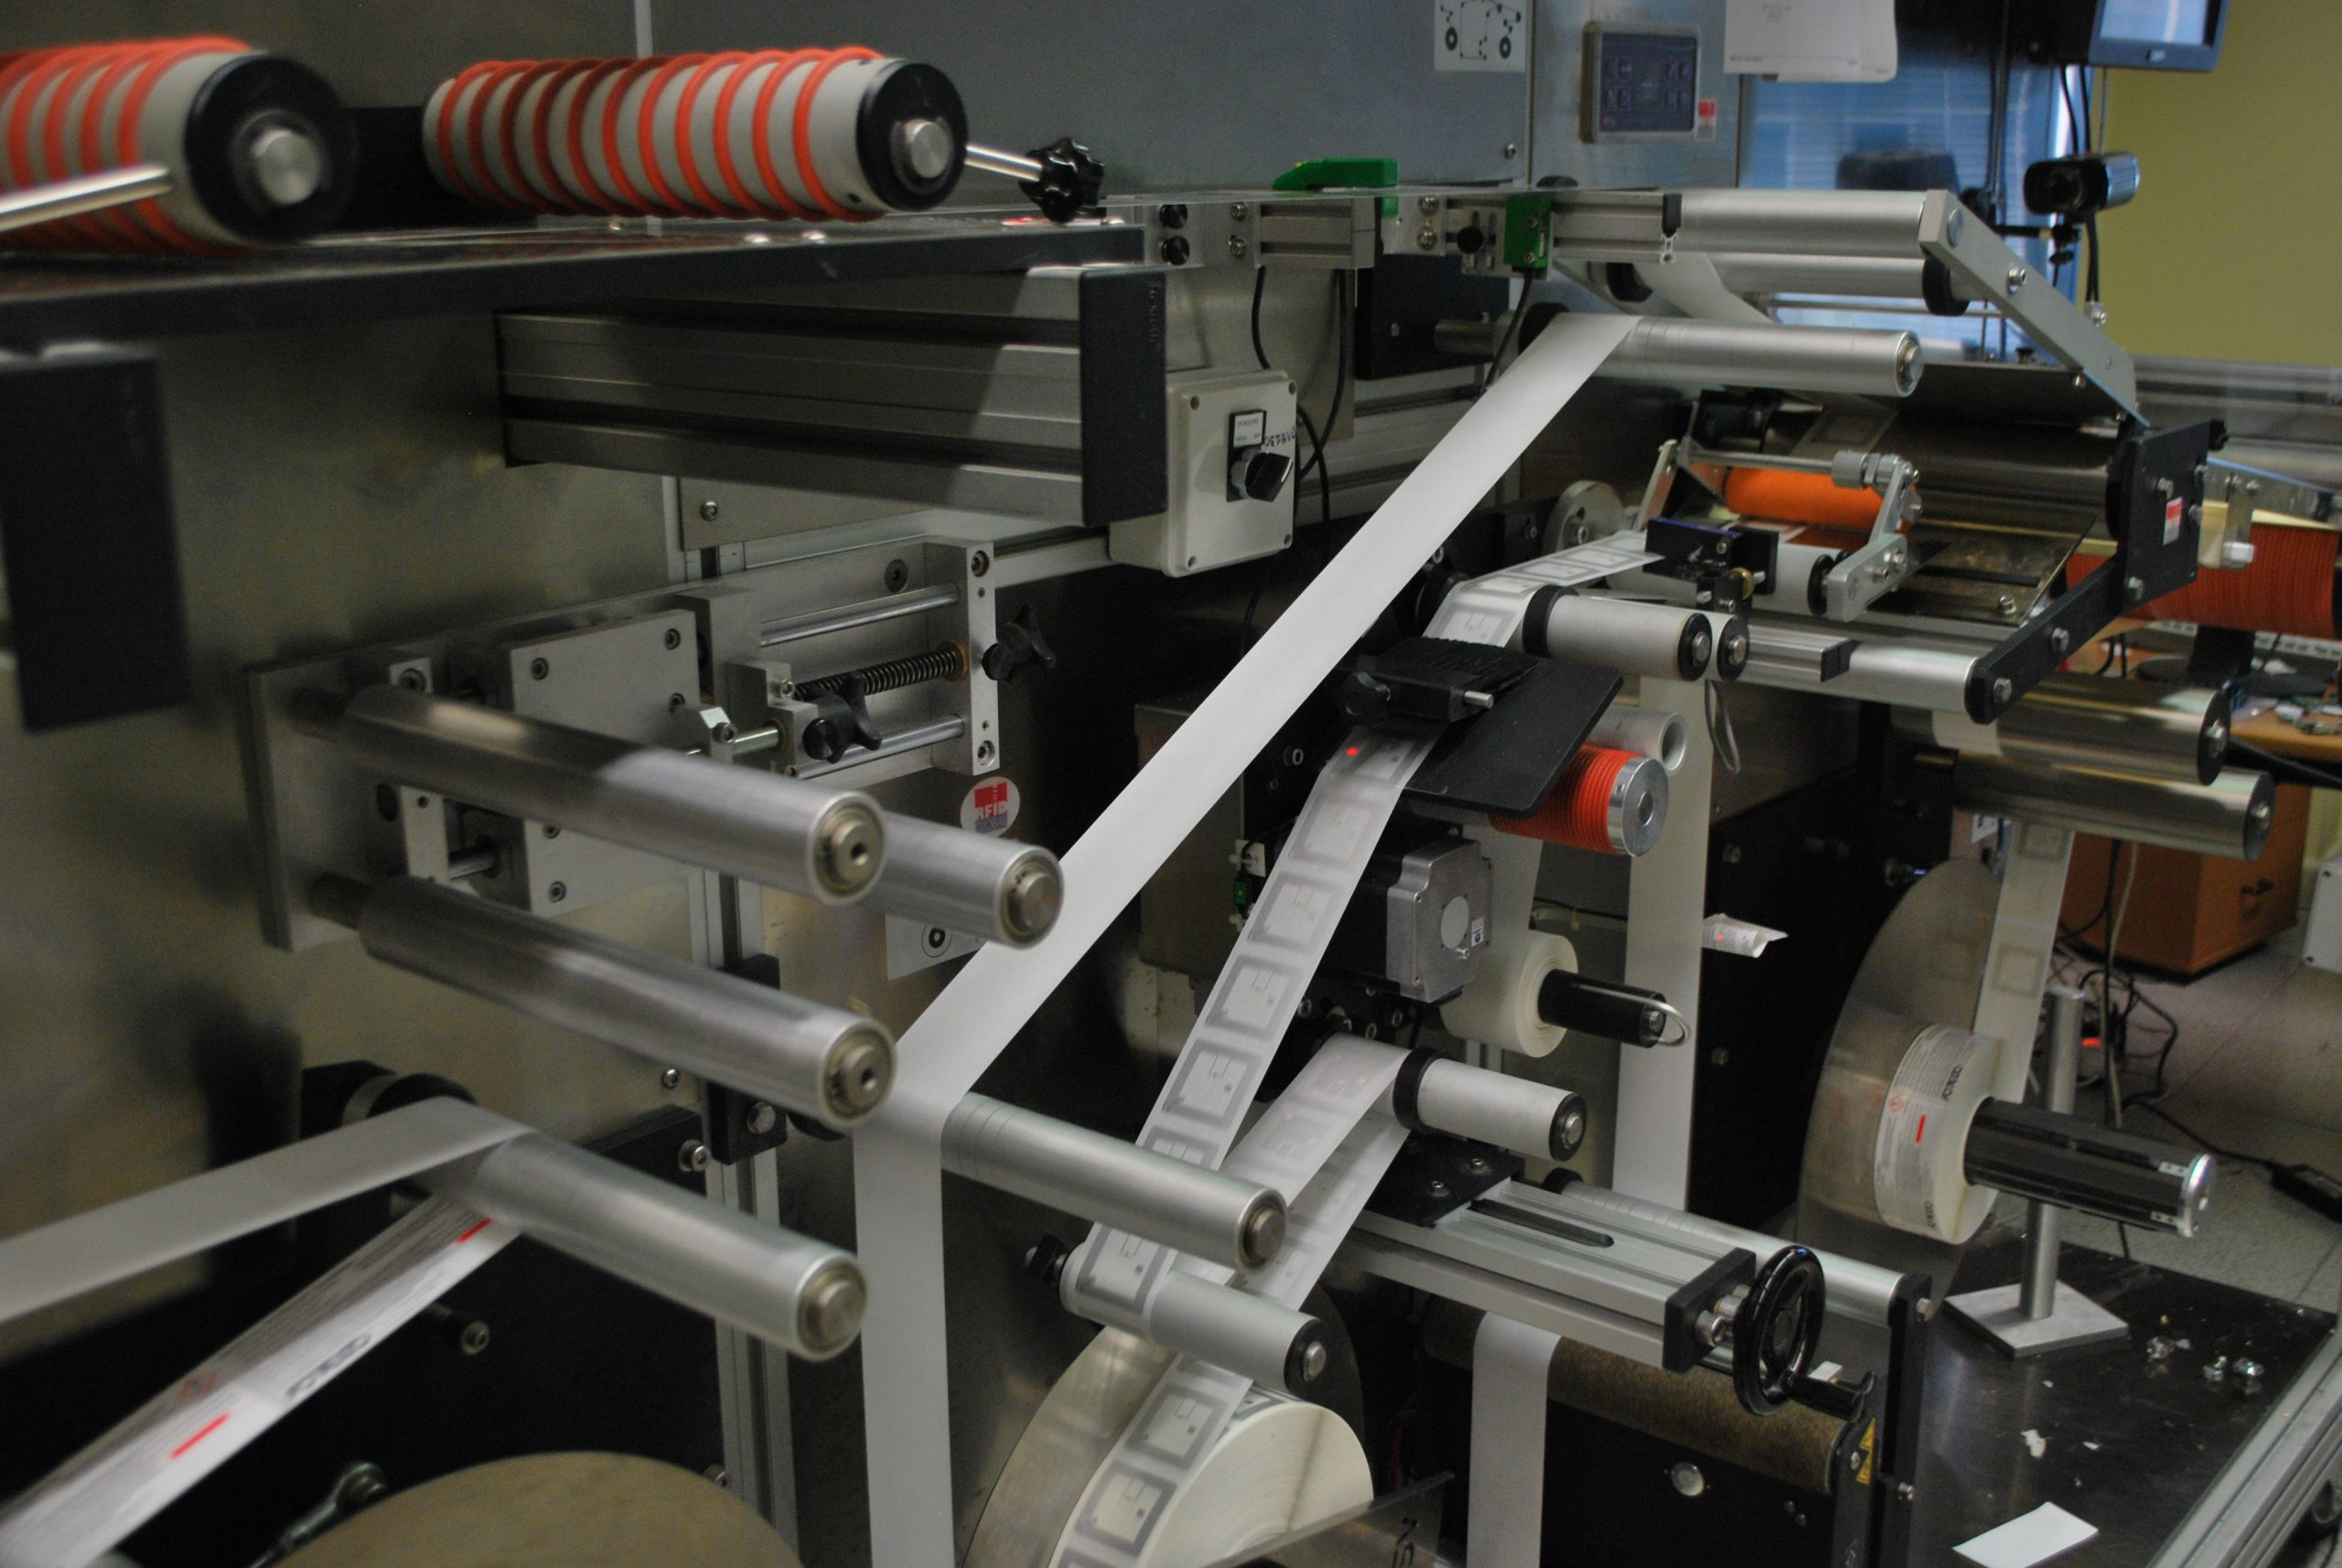 New RFID label production service